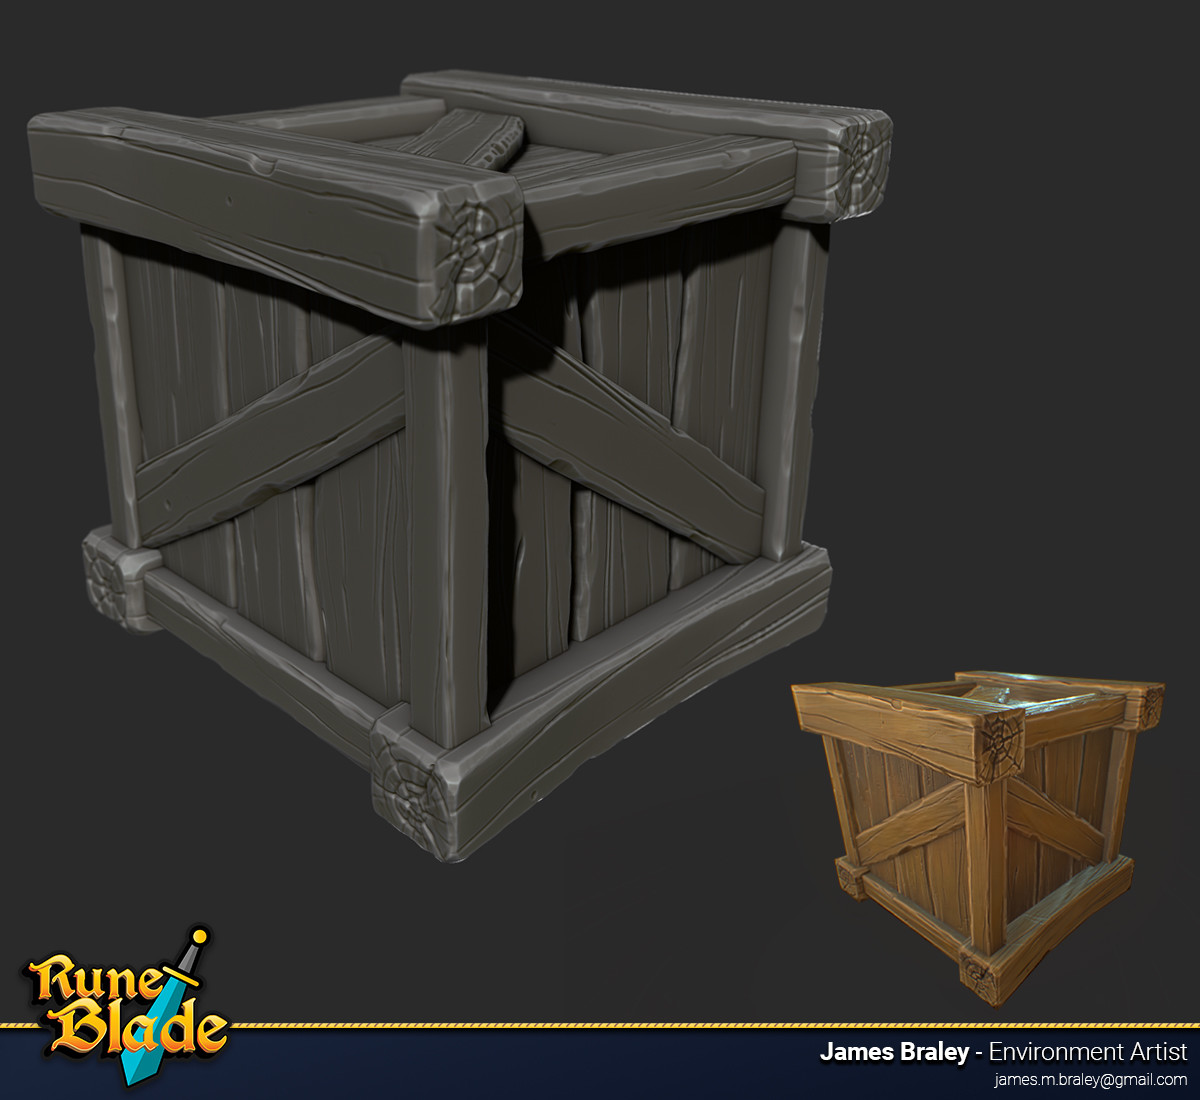 James braley braley runeblade crate